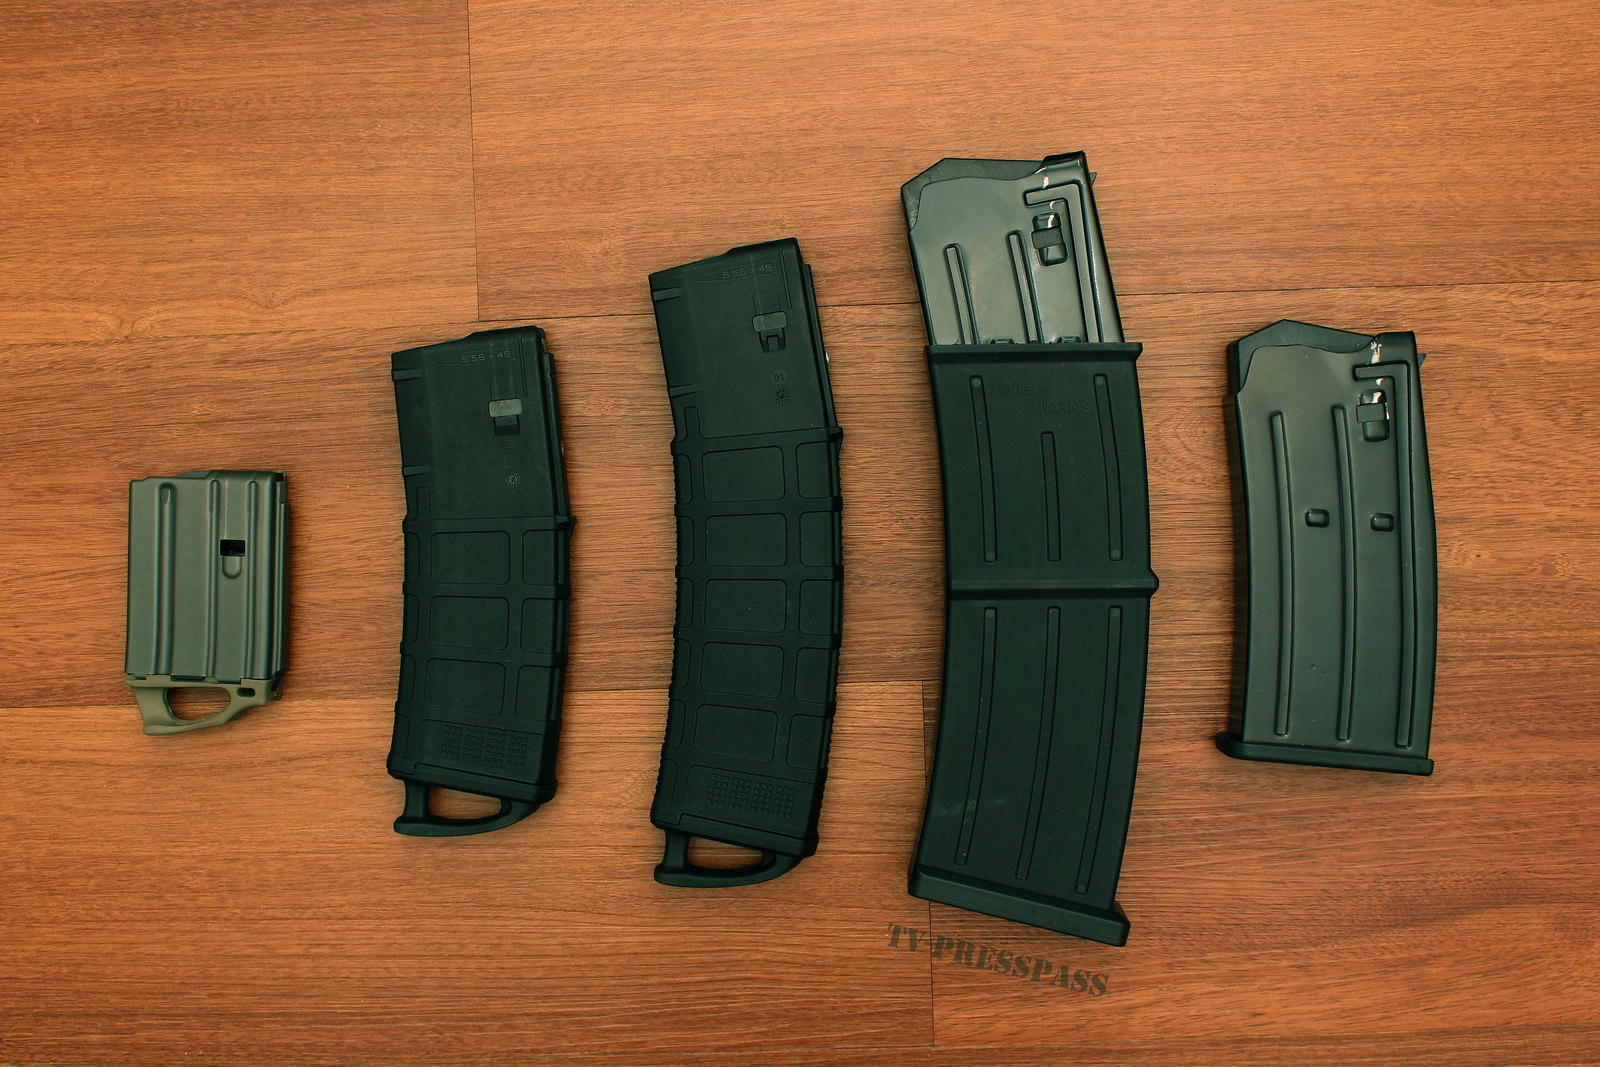 Mka 1919 Magazines Compared